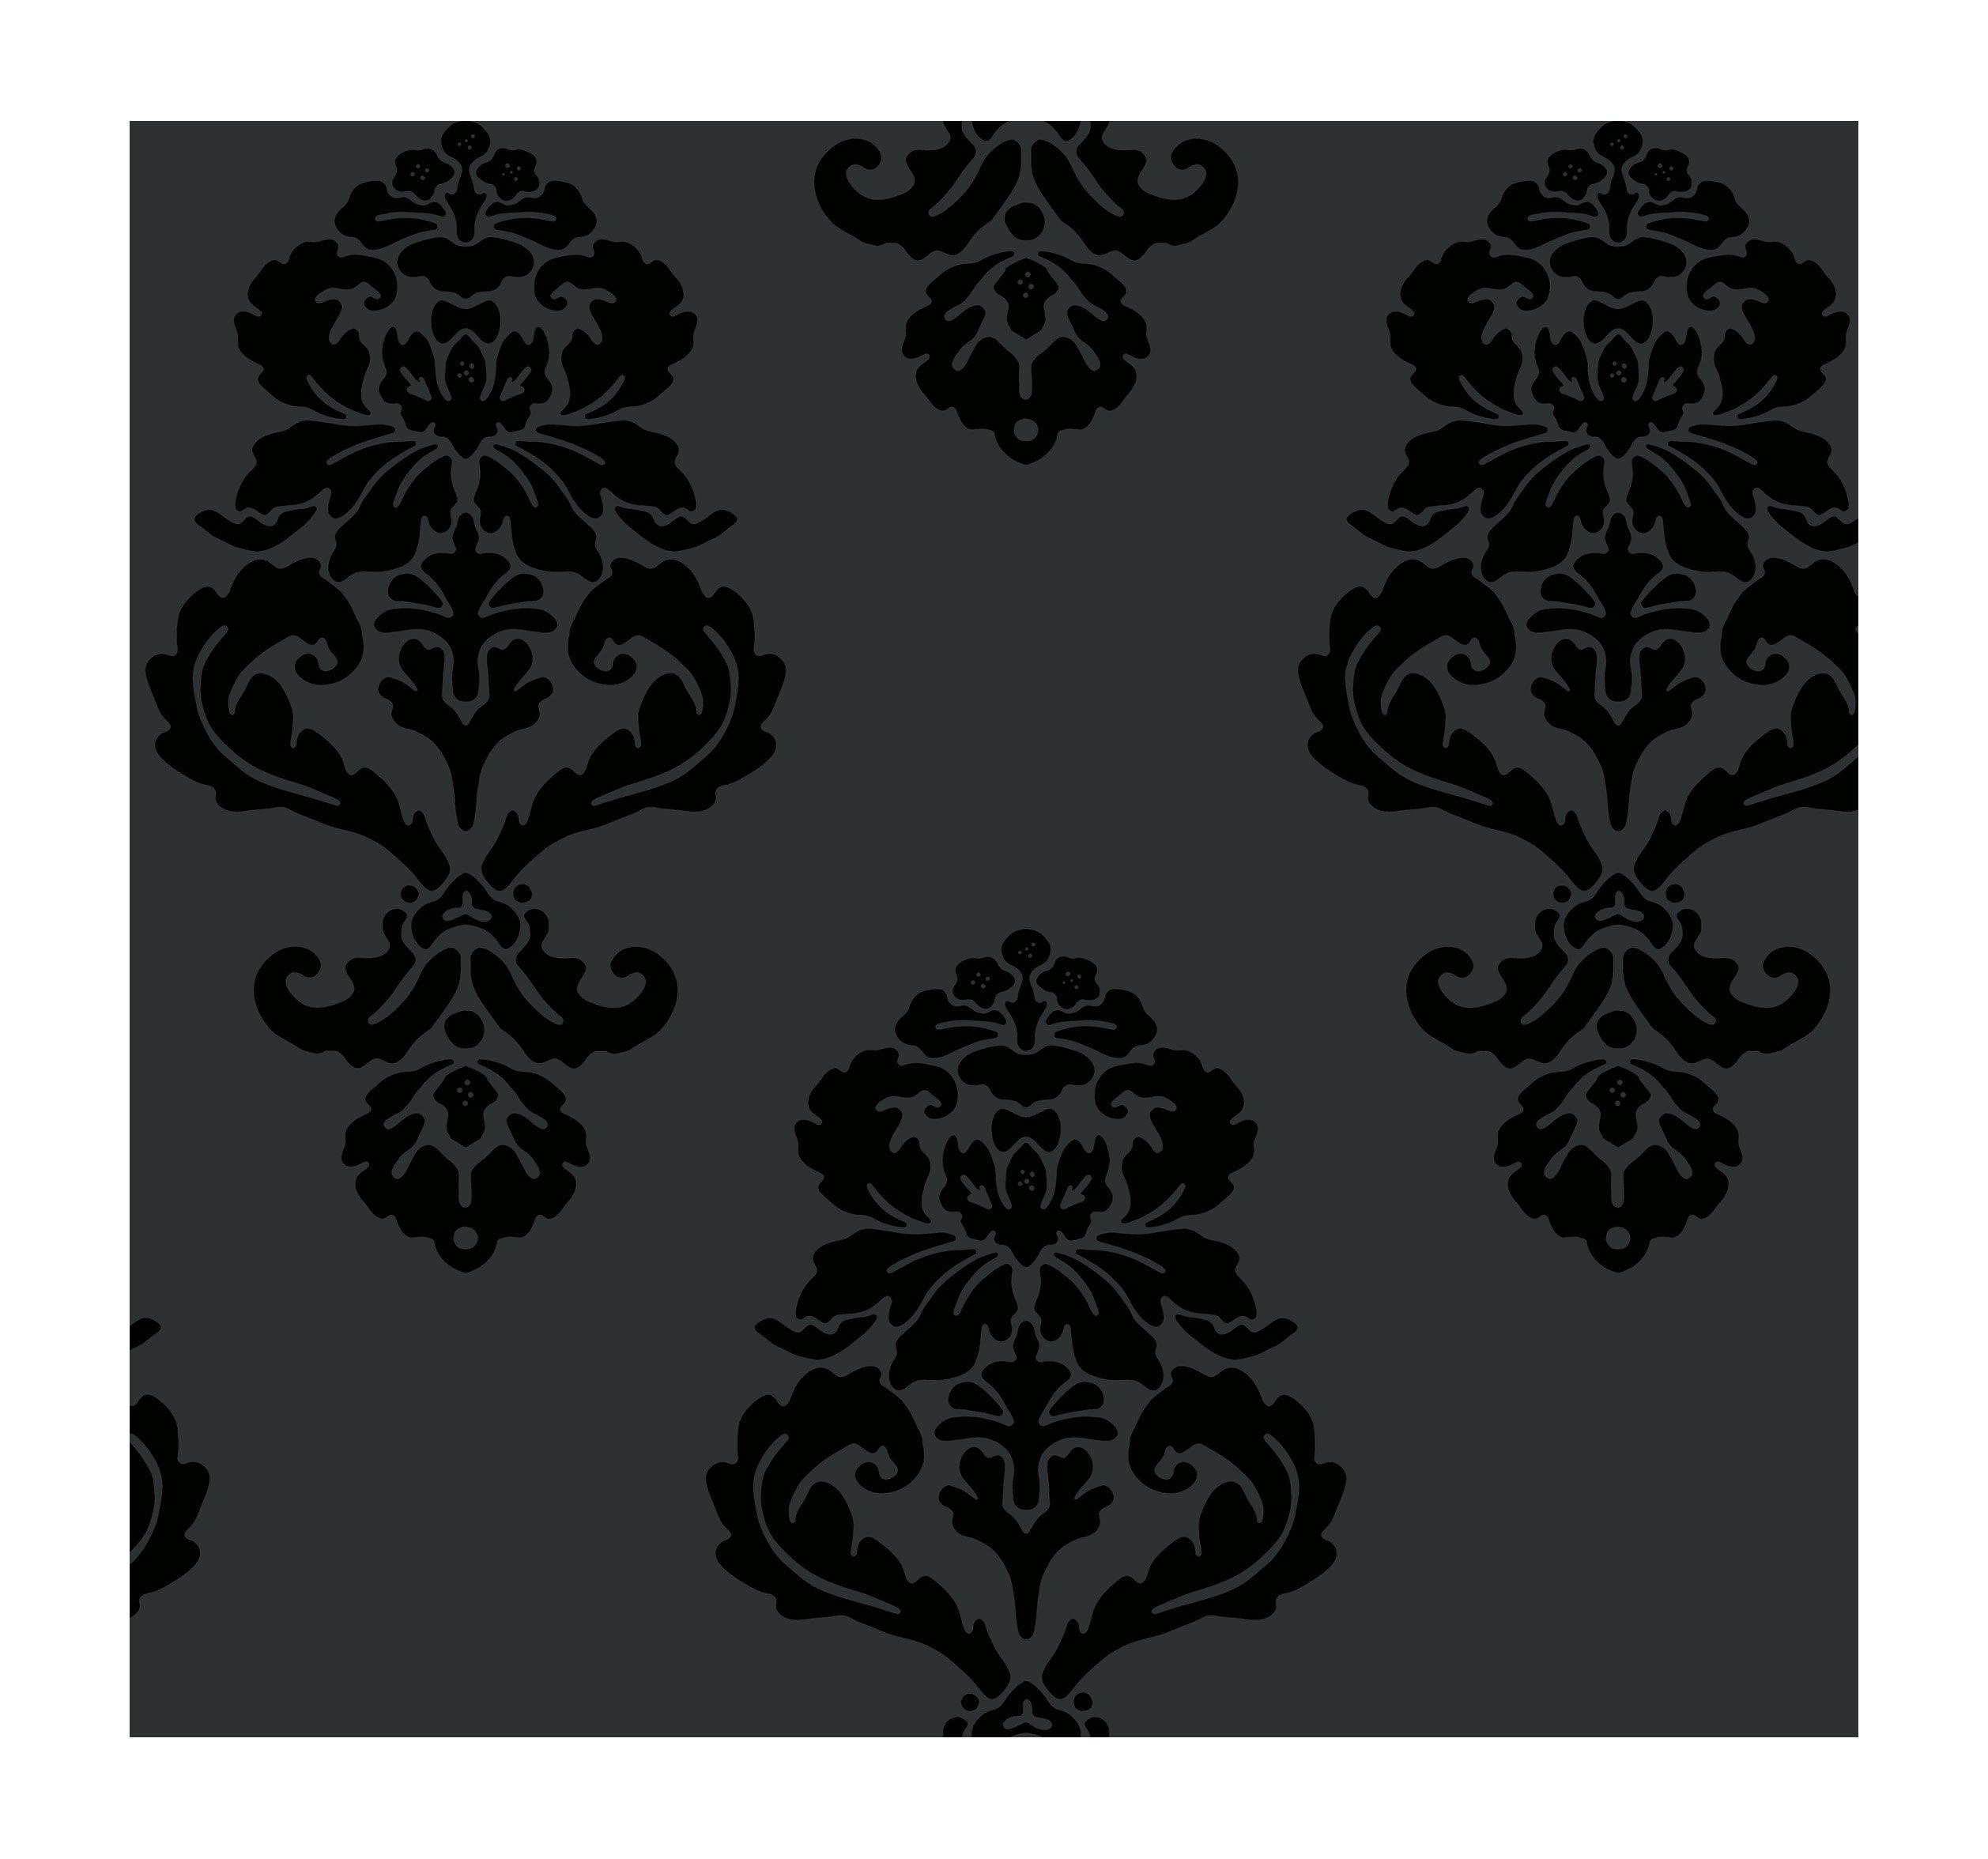 York Wallcoverings Tres Chic BL0397 Graphic Damask Wallpaper, Blacks - Ultra Removable by York Wallcoverings